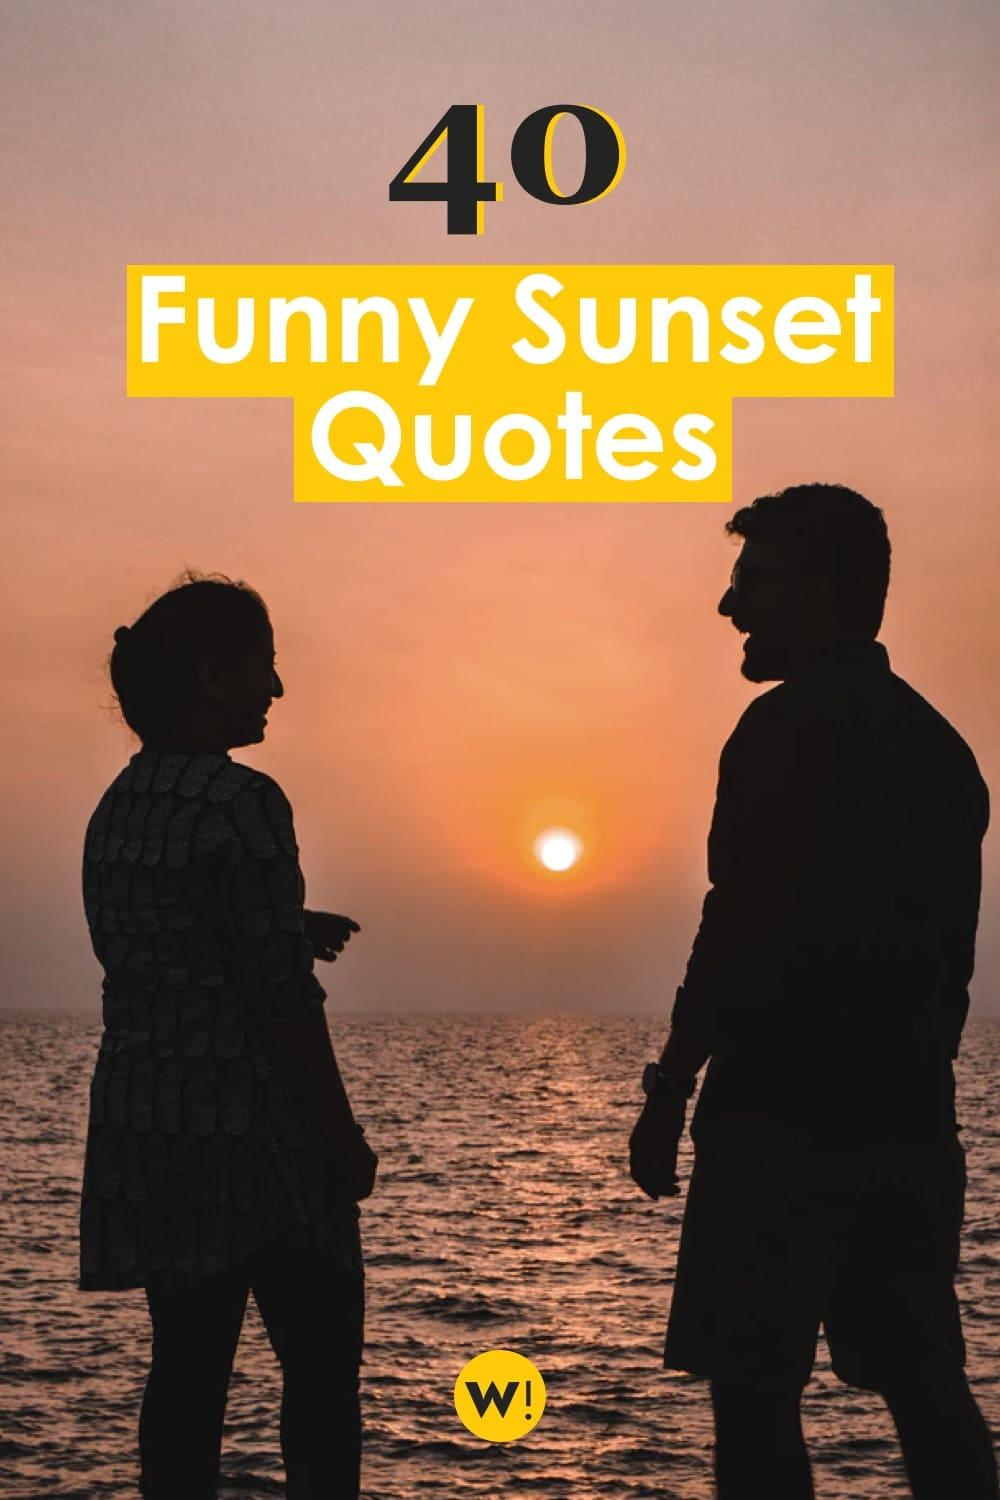 Looking for funny sunset captions to use with your pic? Click to find my personal list of 40 funny sunset quotes & sunset puns! funny quotes to live by |funny quotes for instagram |funny sunset captions for instagram |funny sunset quotes